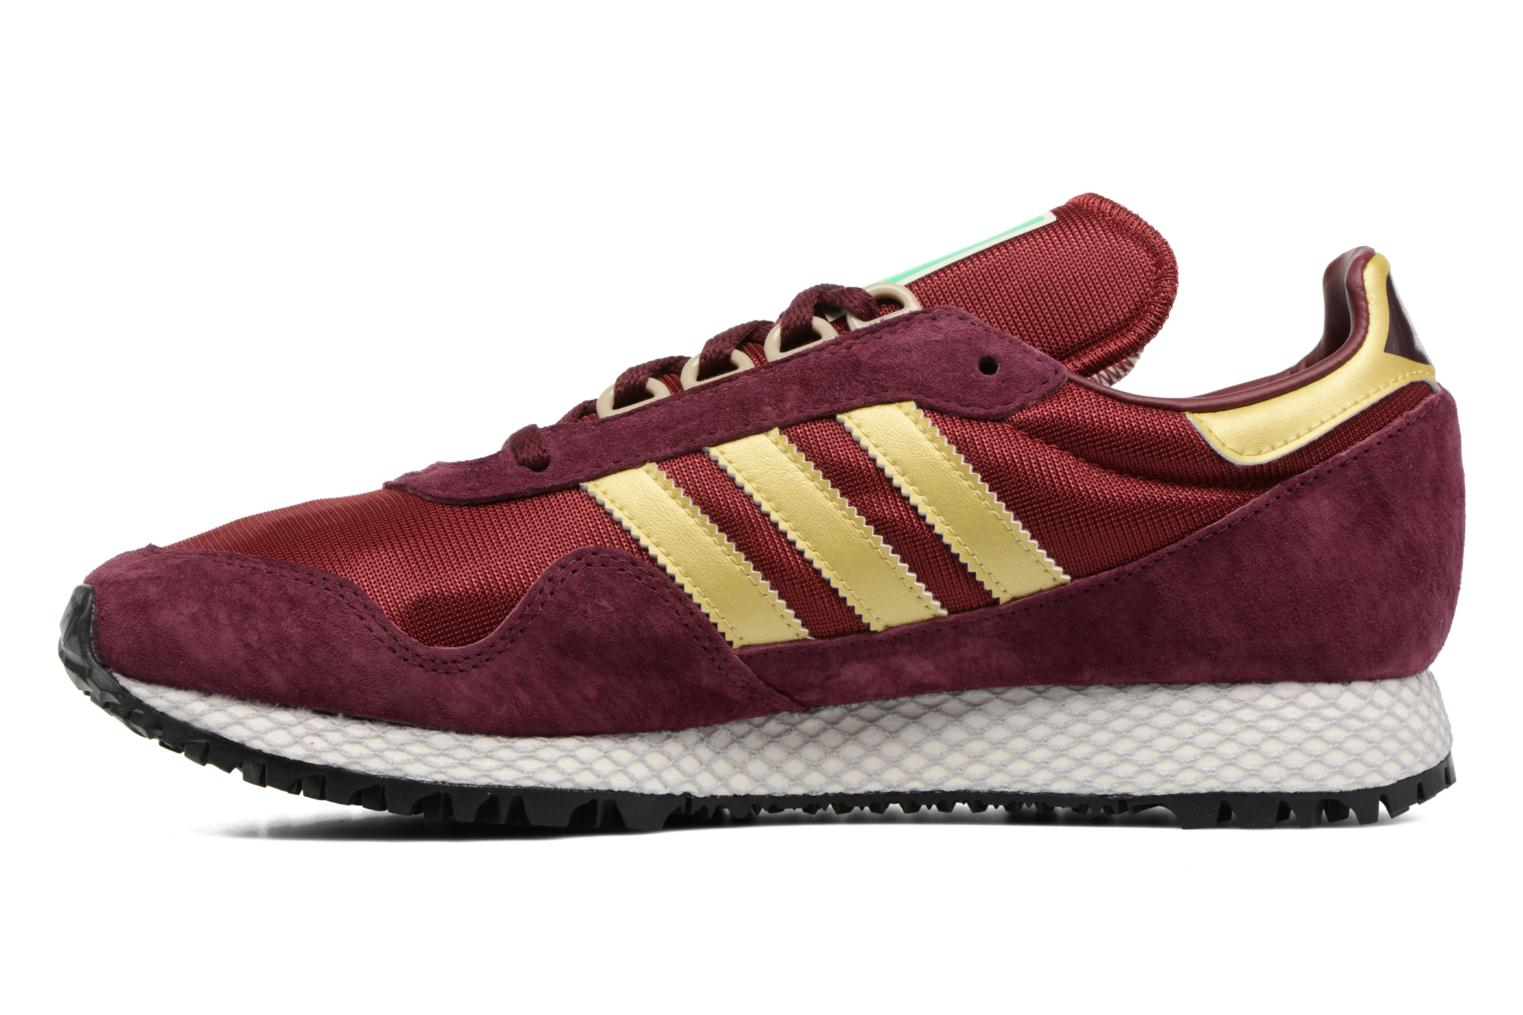 Lidevi/Borcol/Ormat Adidas Originals New York (Bordeaux)